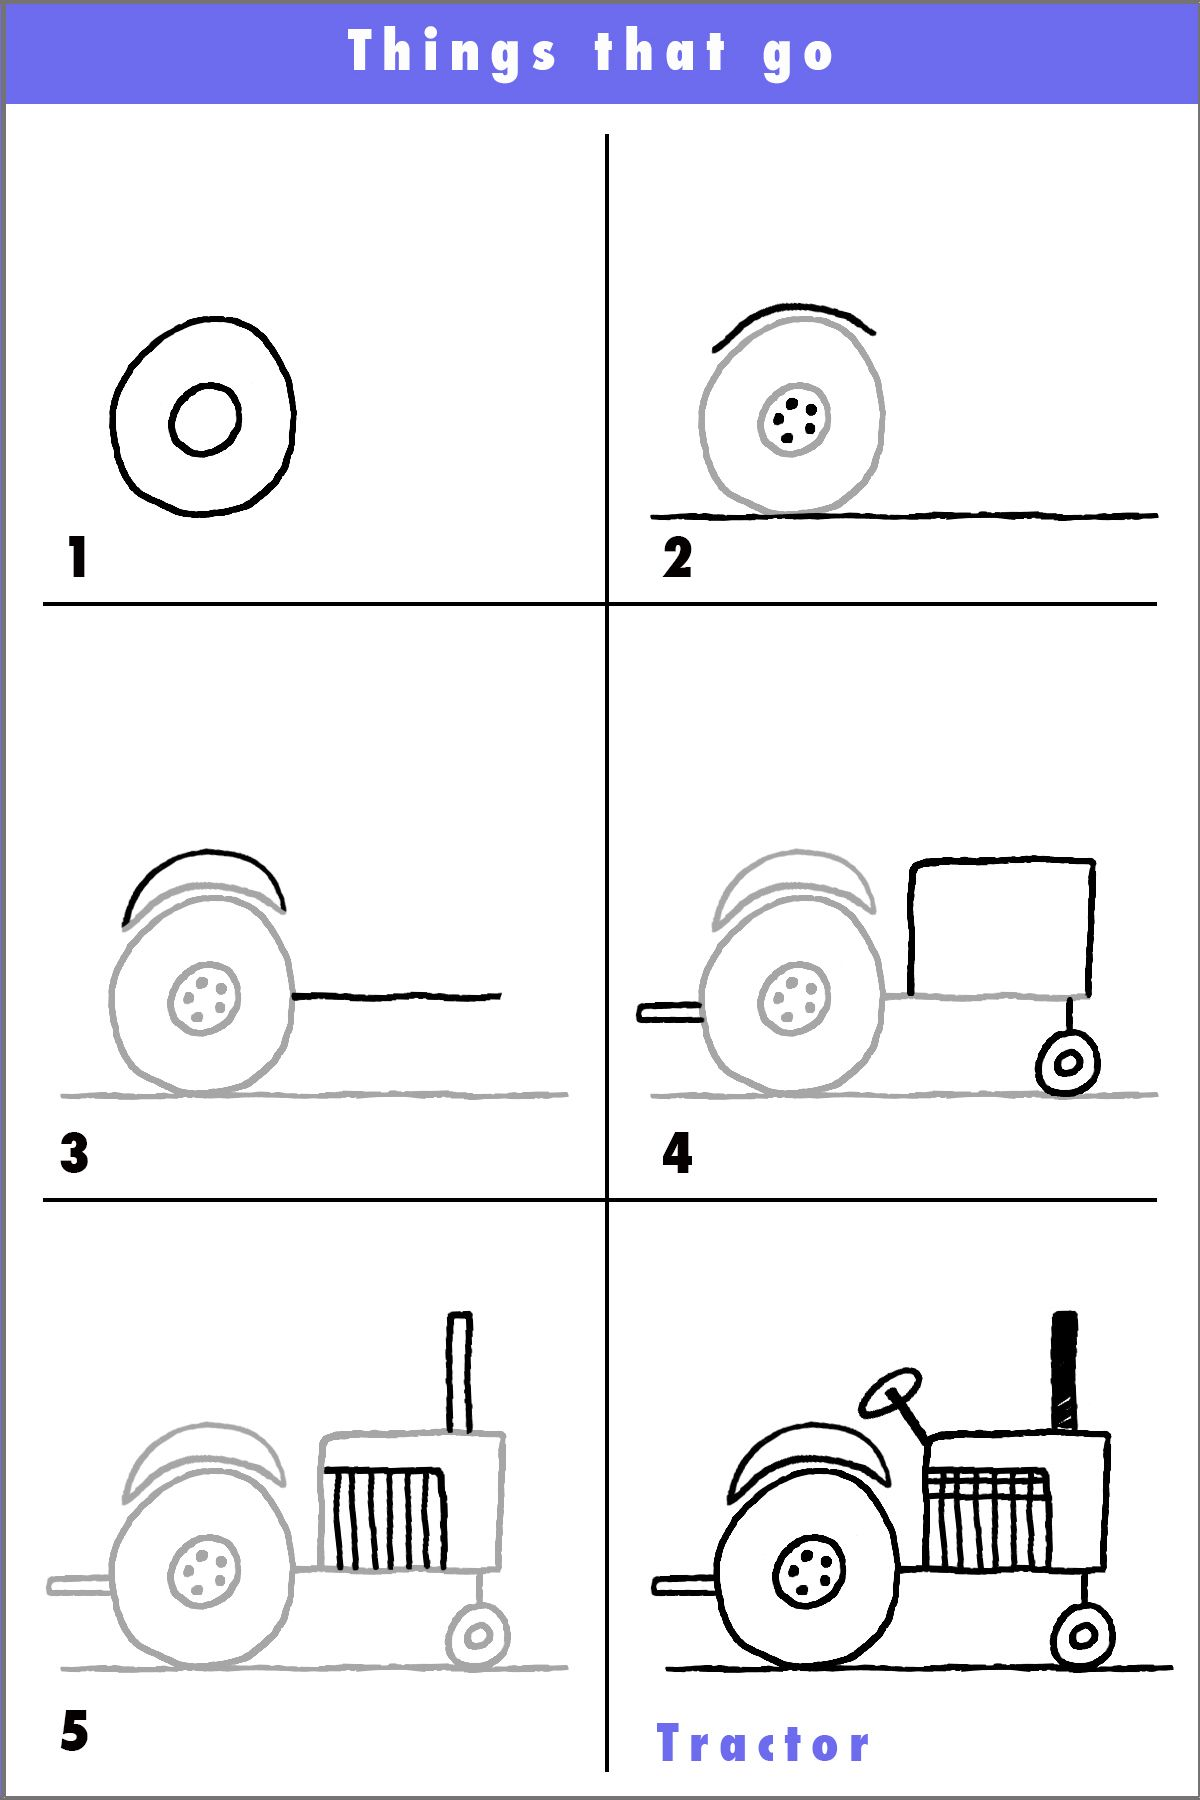 Draw A Tractor!